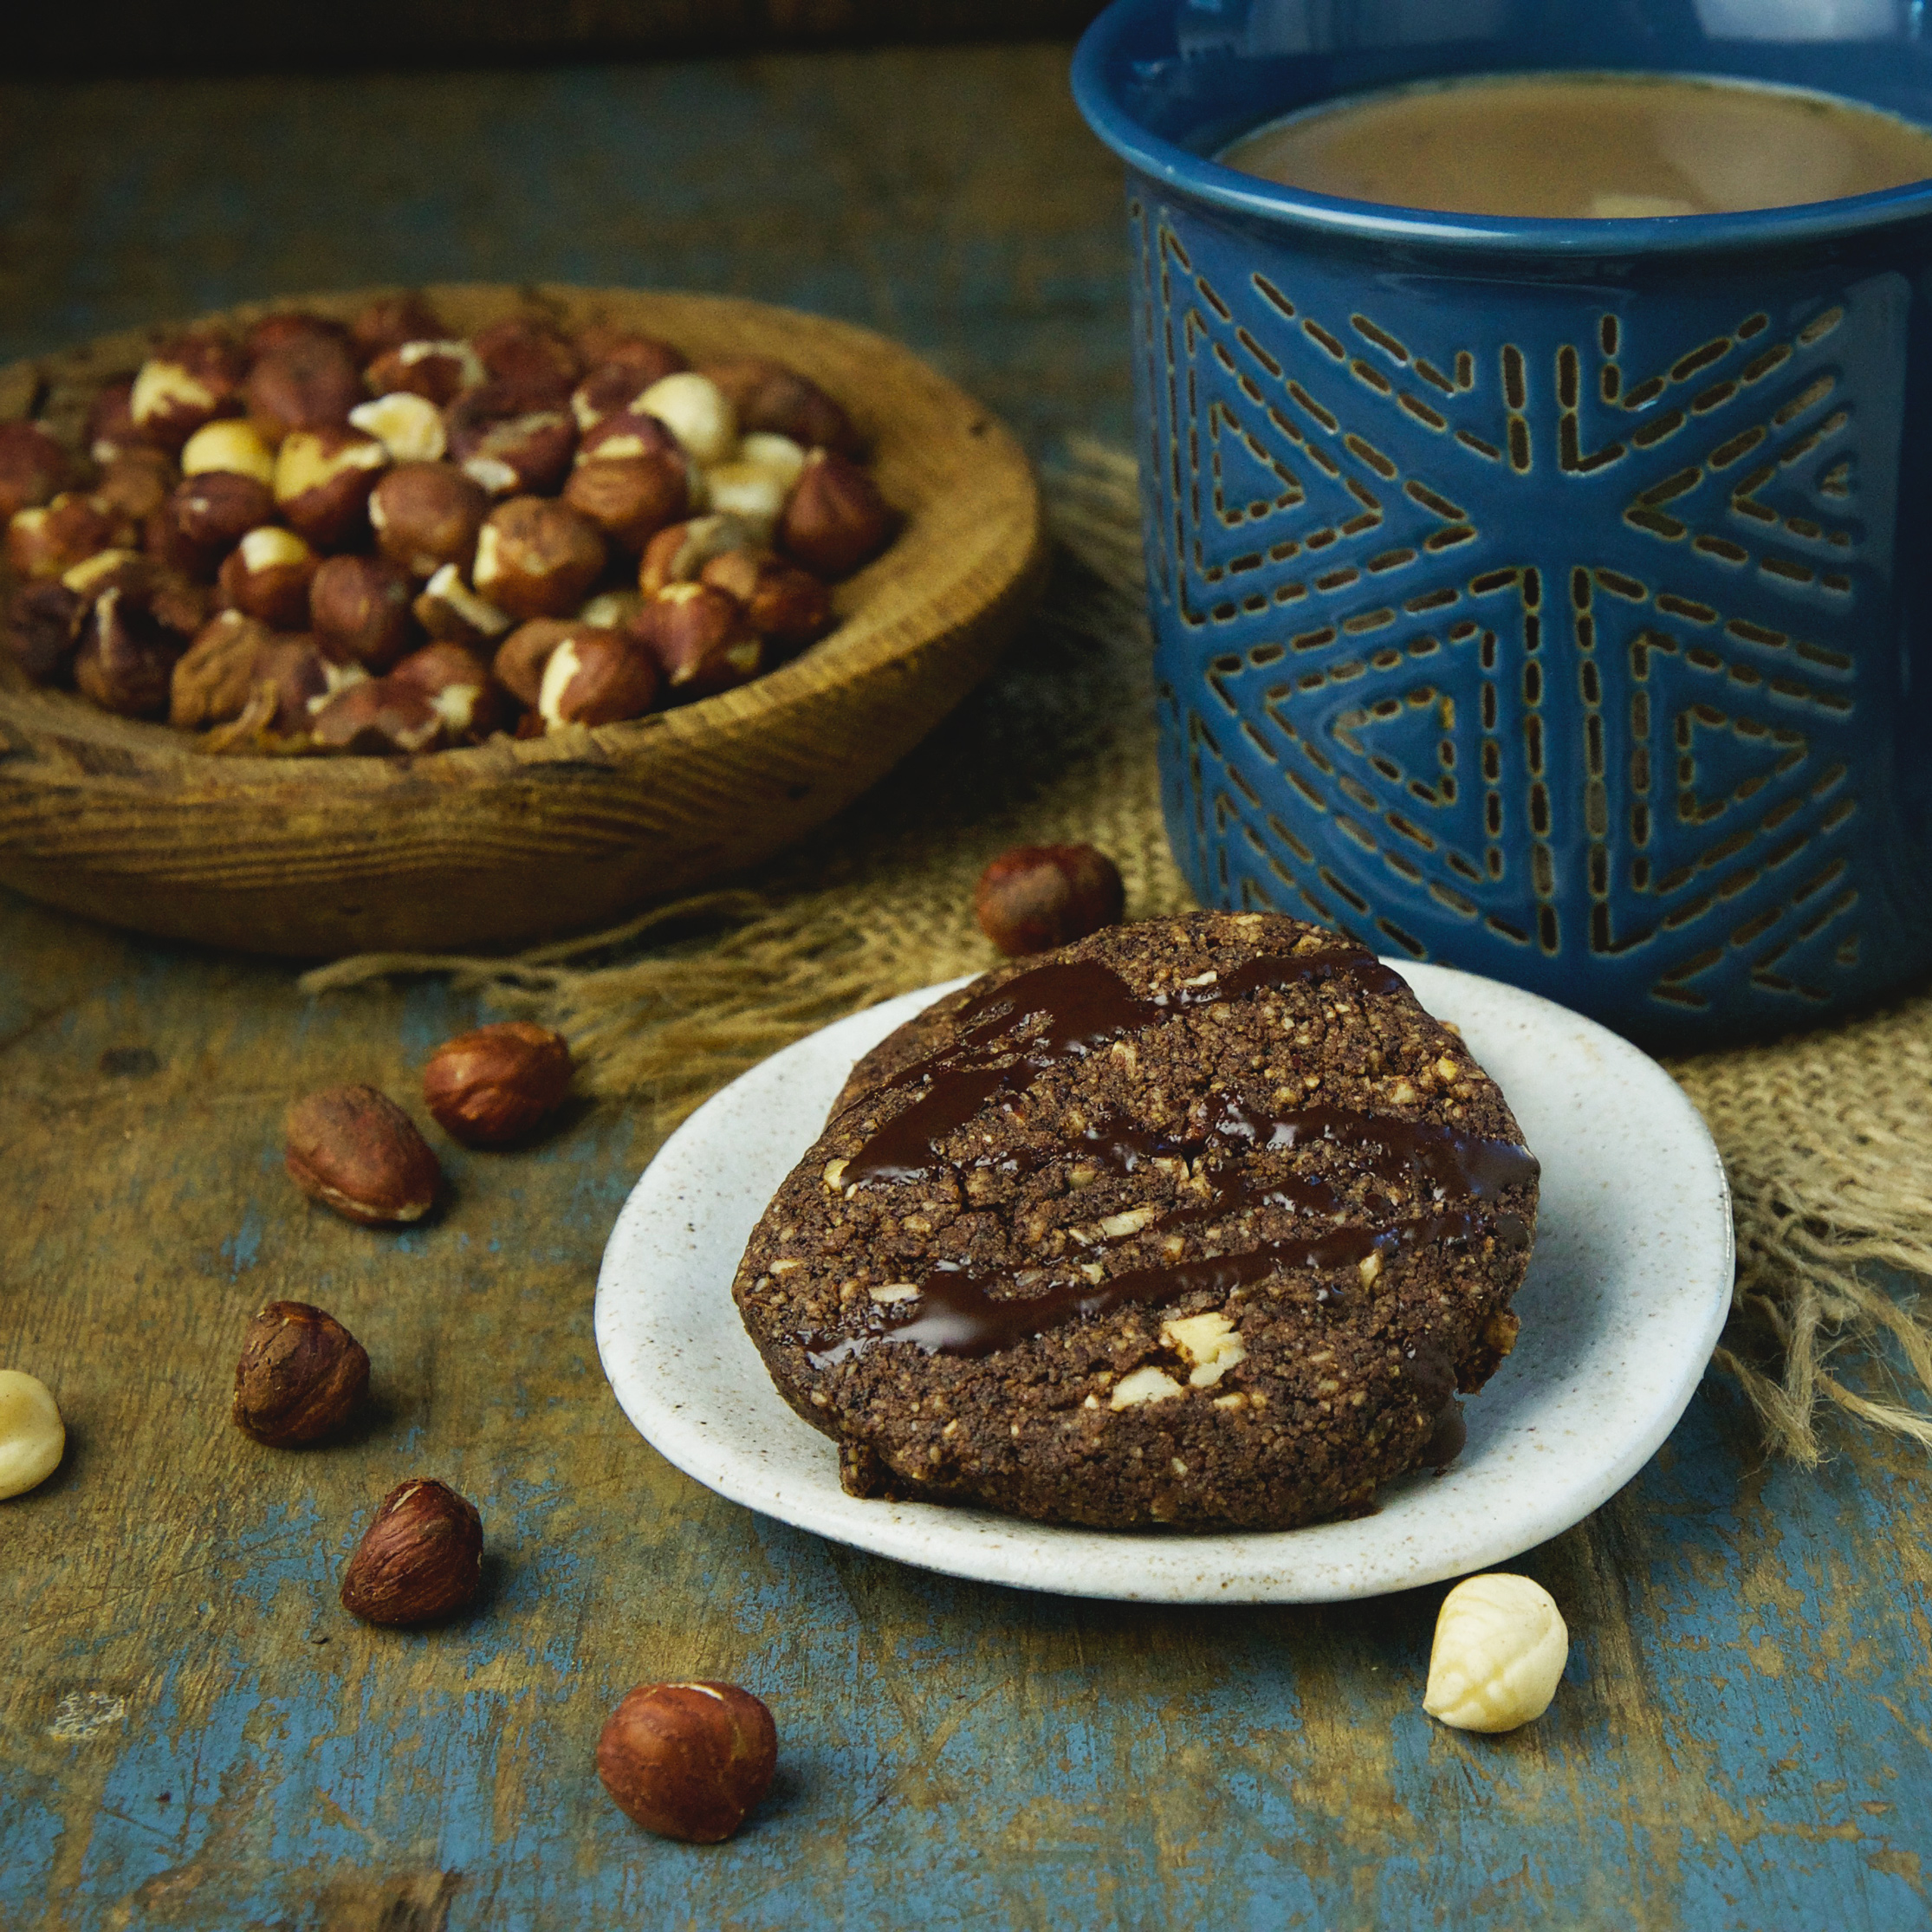 Low-Carb Chocolate Hazelnut Shortbread Cookies-Recipe card image.